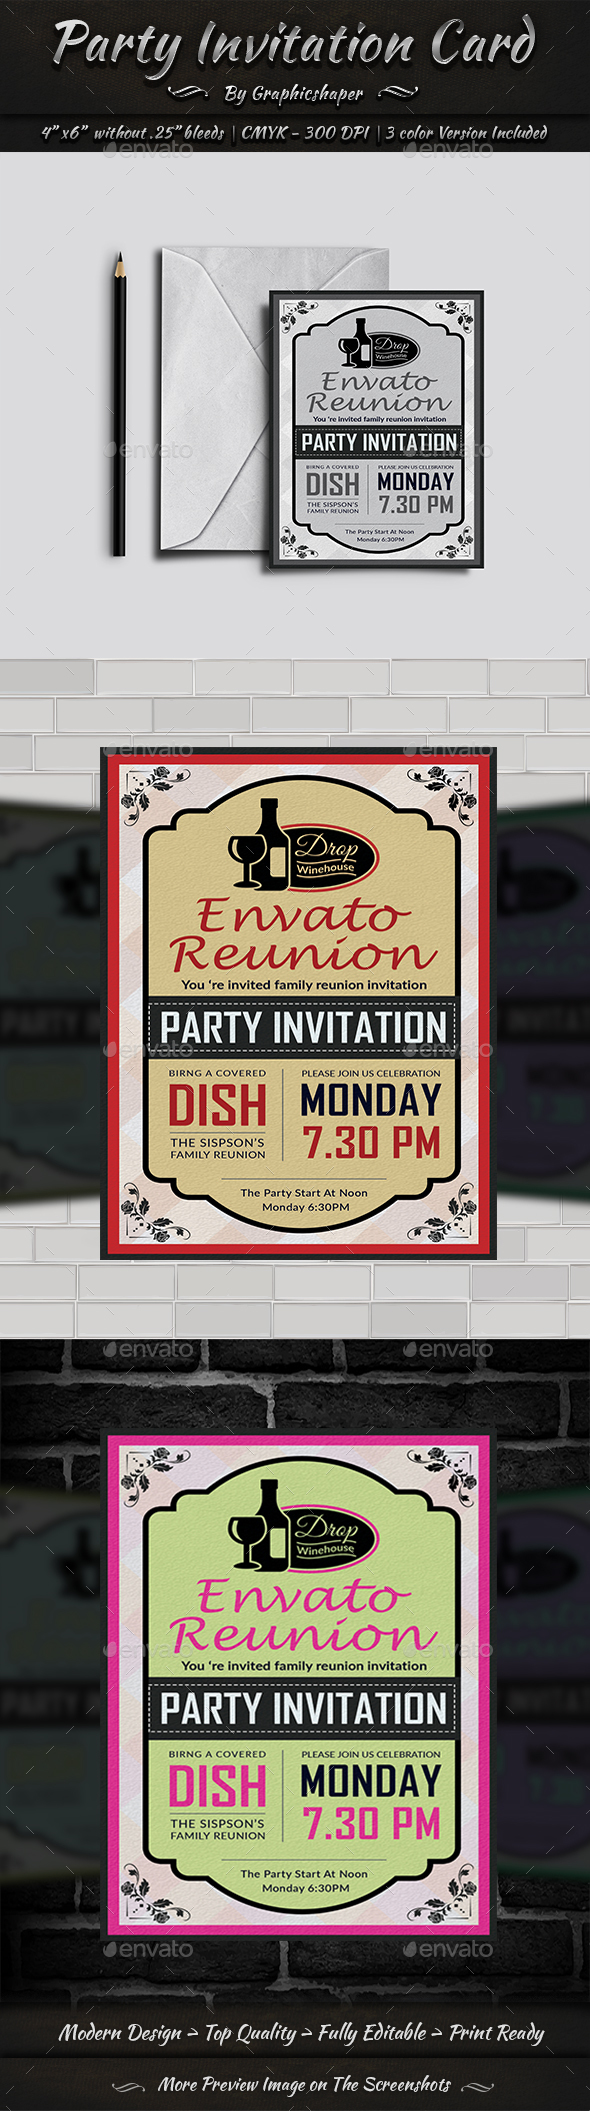 Party Invitation Card - Greeting Cards Cards & Invites